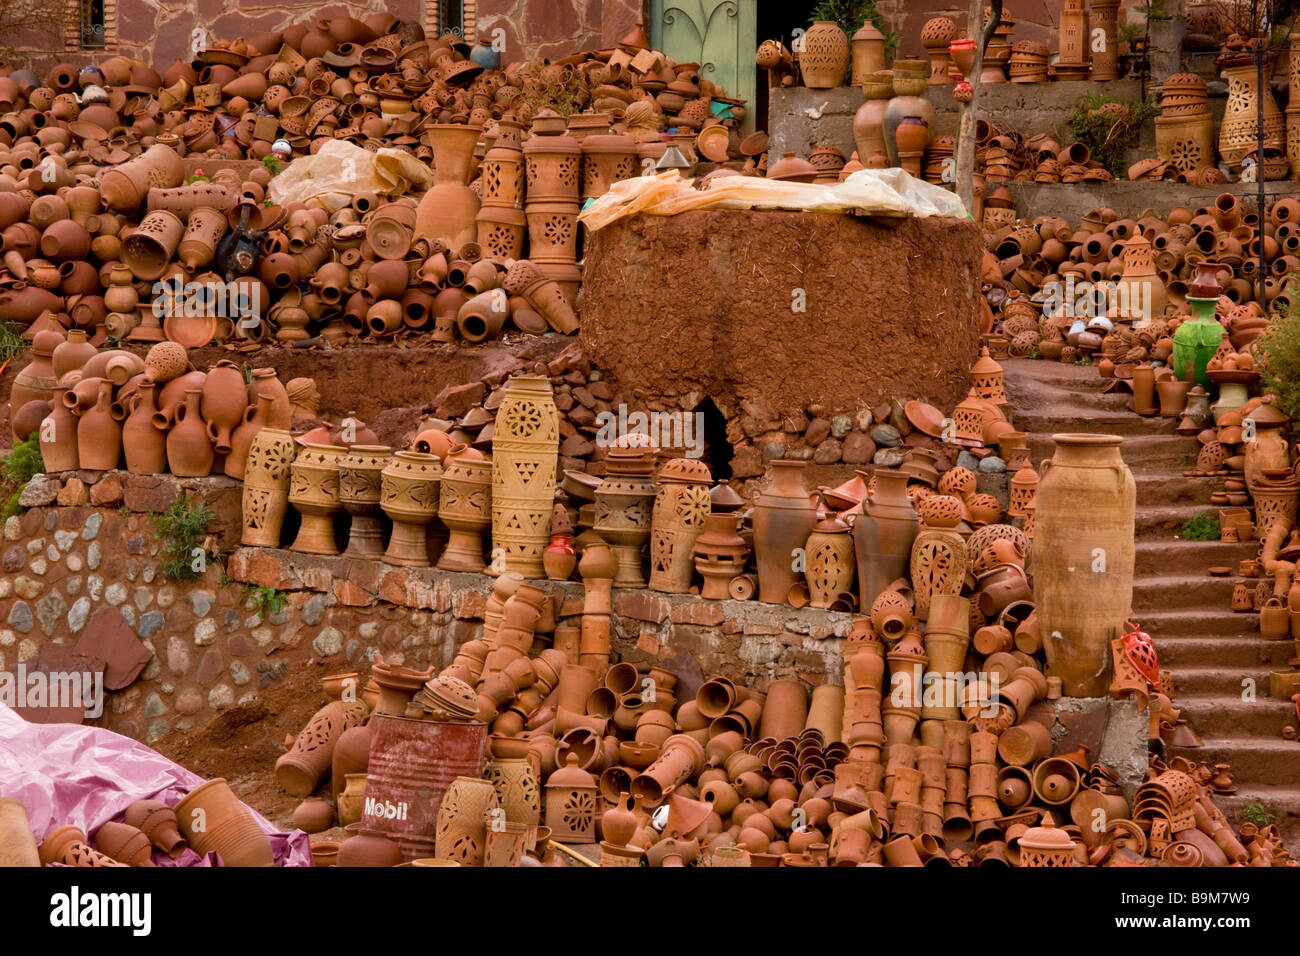 Extraordinary pottery display by roadside in Ourika Valley high Atlas mountains Morocco - Stock Image